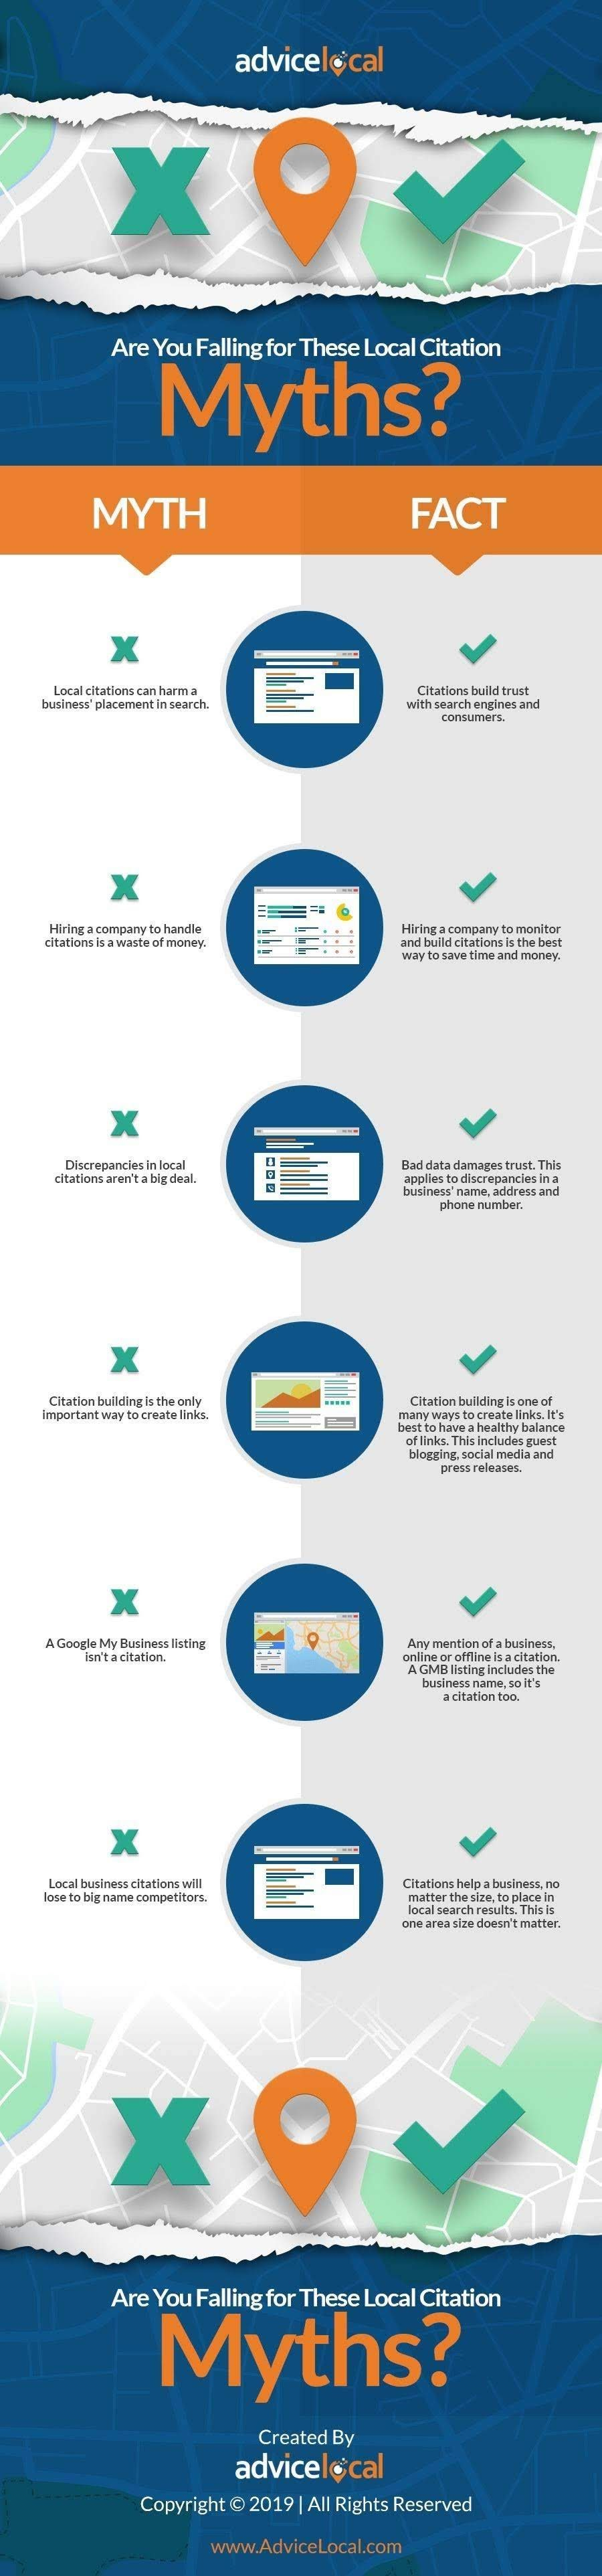 Are You Falling for These Local Citation Myths? #infographic